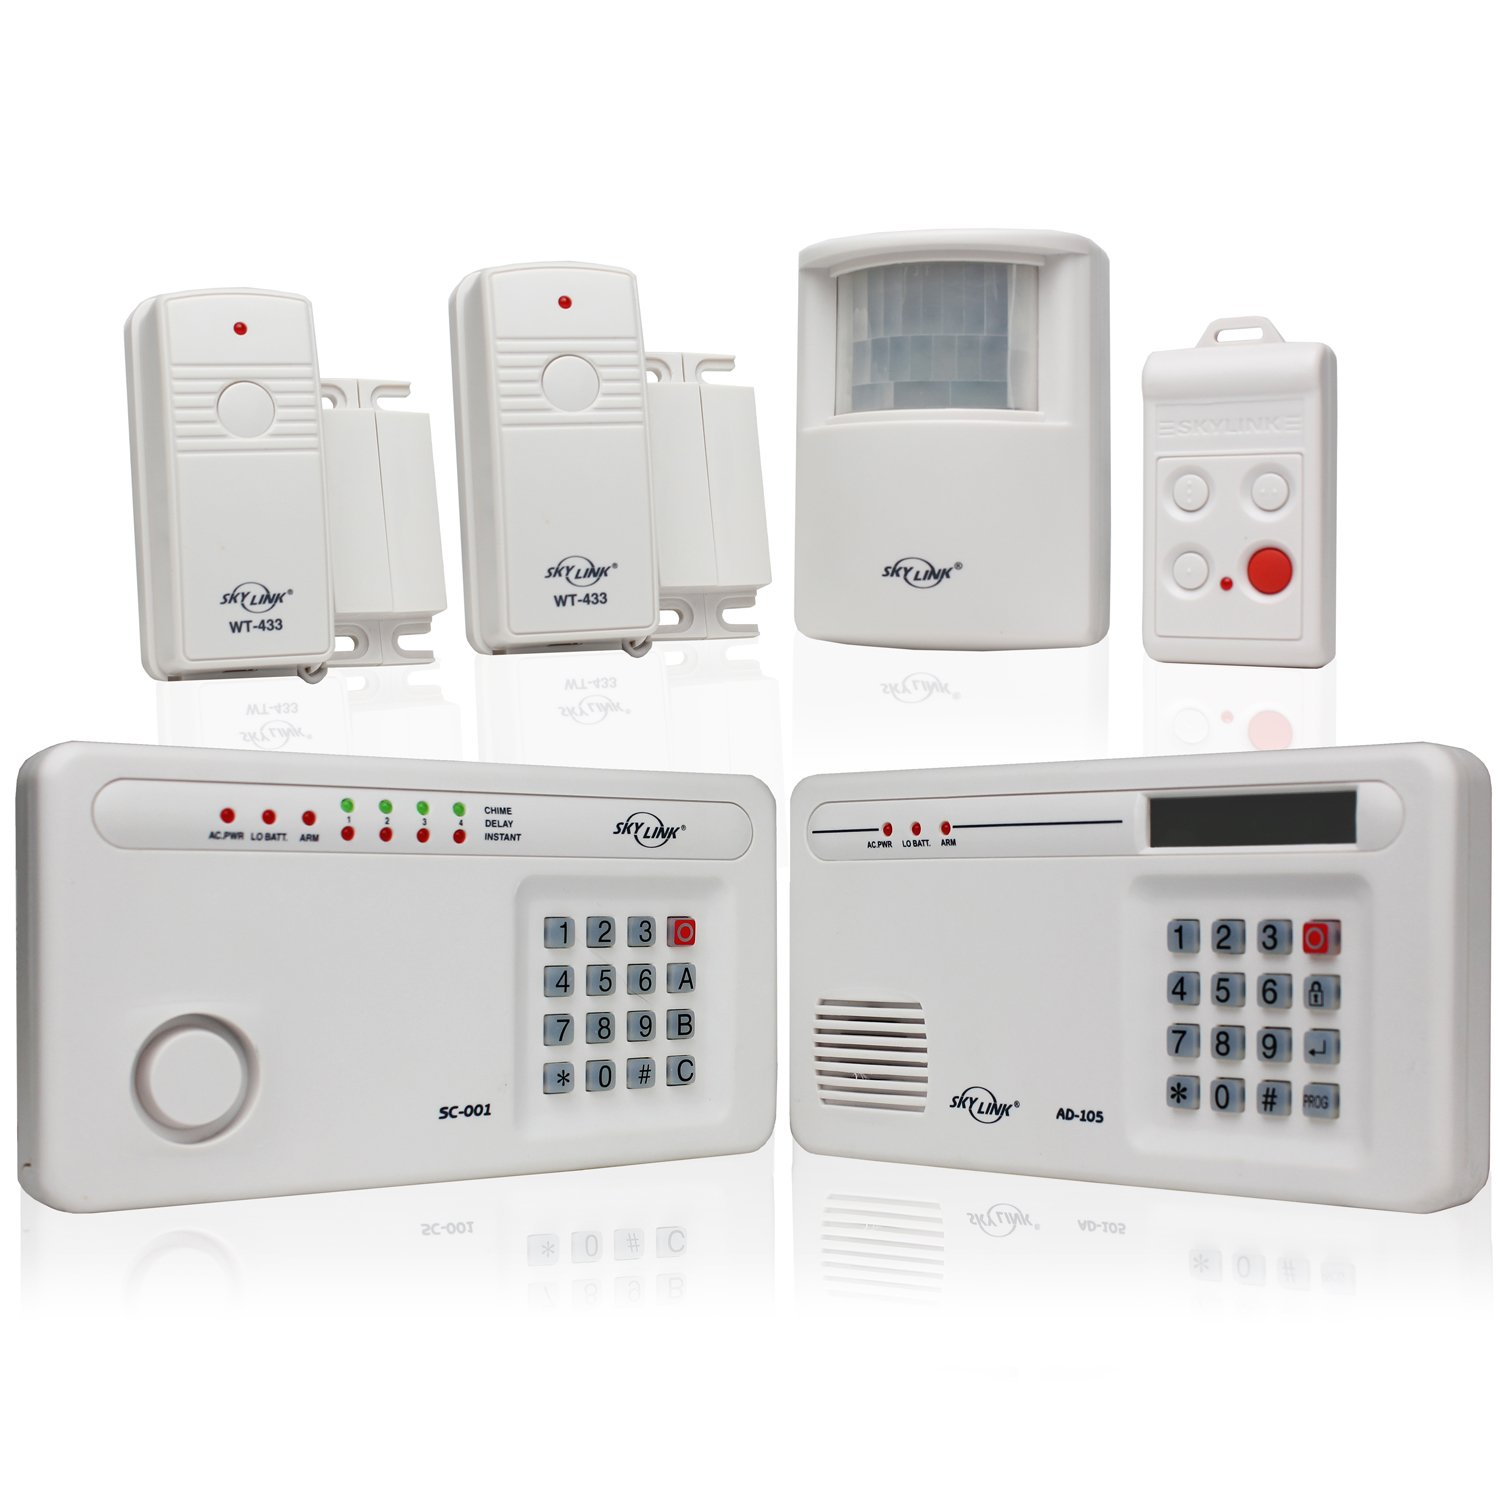 The Benefits Of A Wireless Home Alarm System Basic Wiring Detached Garage Monitoring Fees And When Triggered Its Siren Will Sound Signal Be Sent To Dialer Call Up 9 Preprogrammed Phone Or Pager